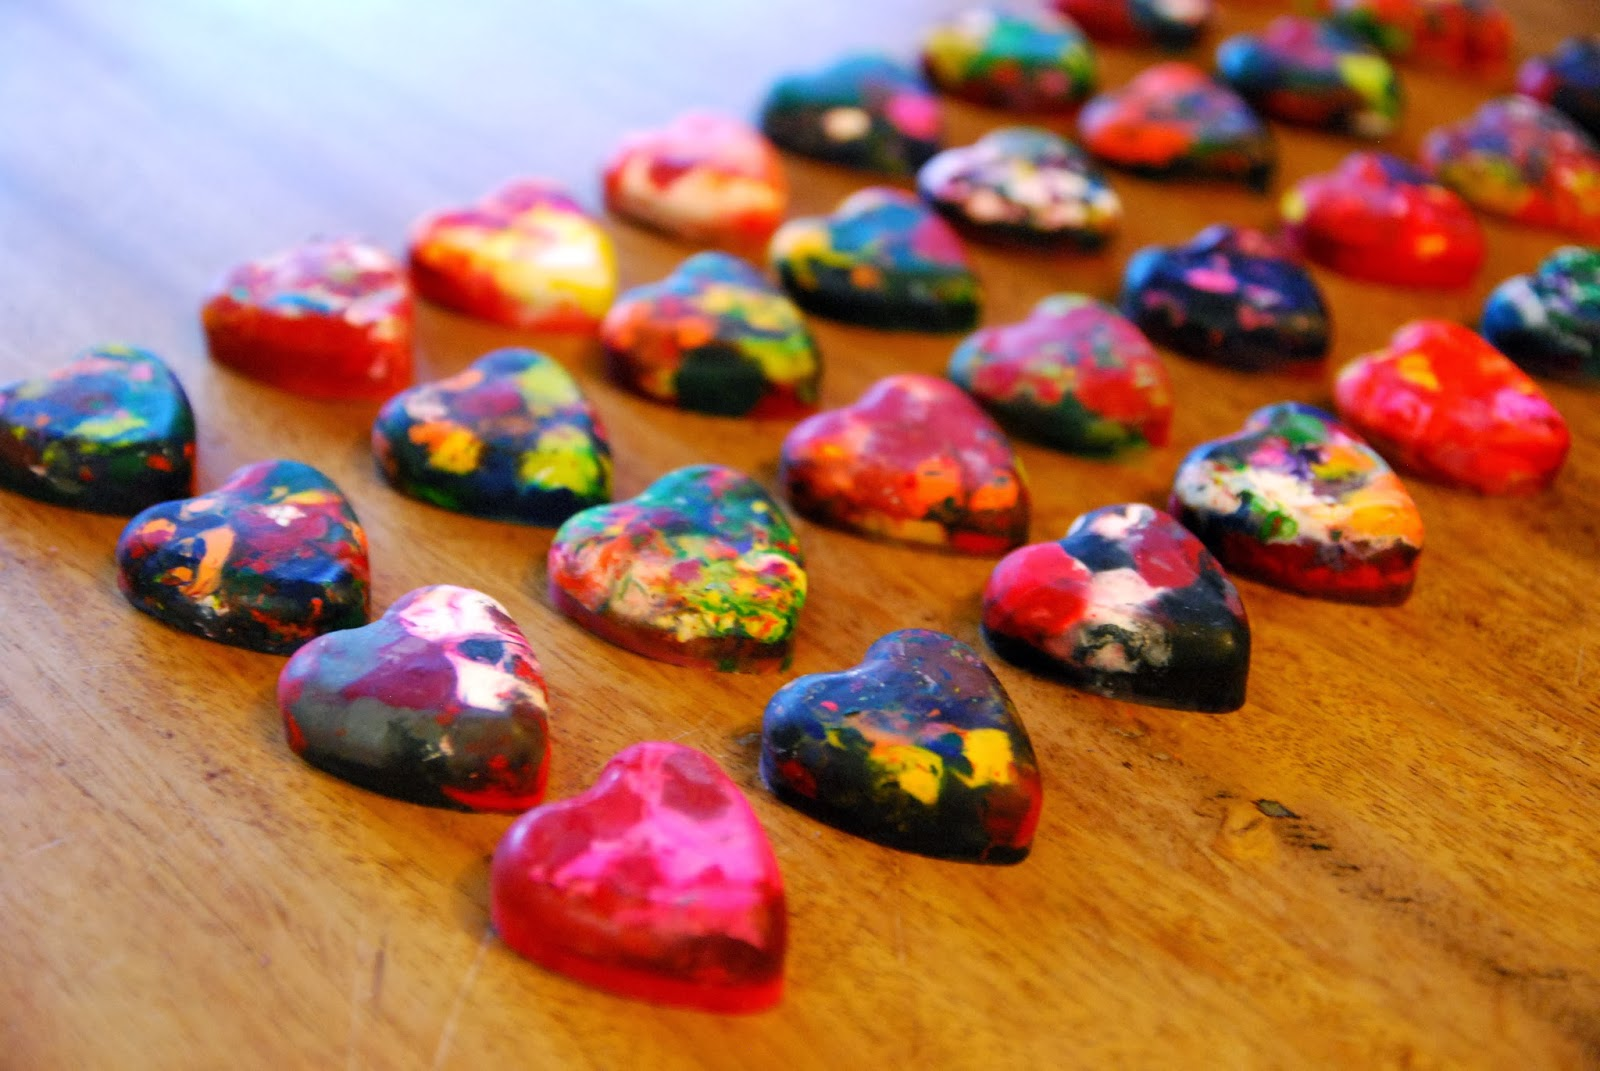 Vet School Widow: Crayon Shaped Hearts for Valentine's Day